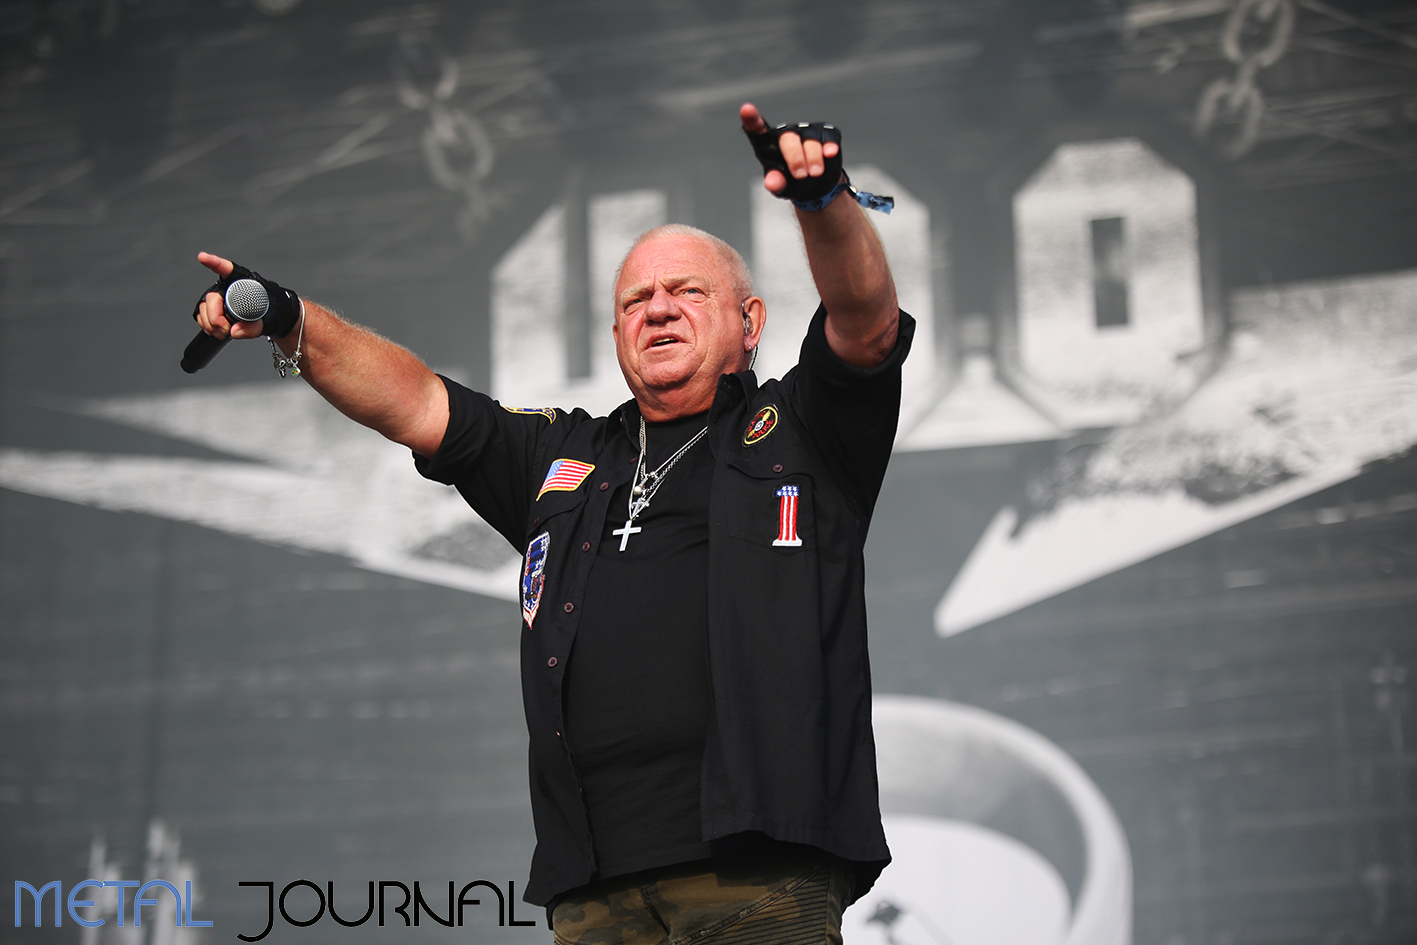 udo - metal journal rock fest barcelona 2019 pic 6